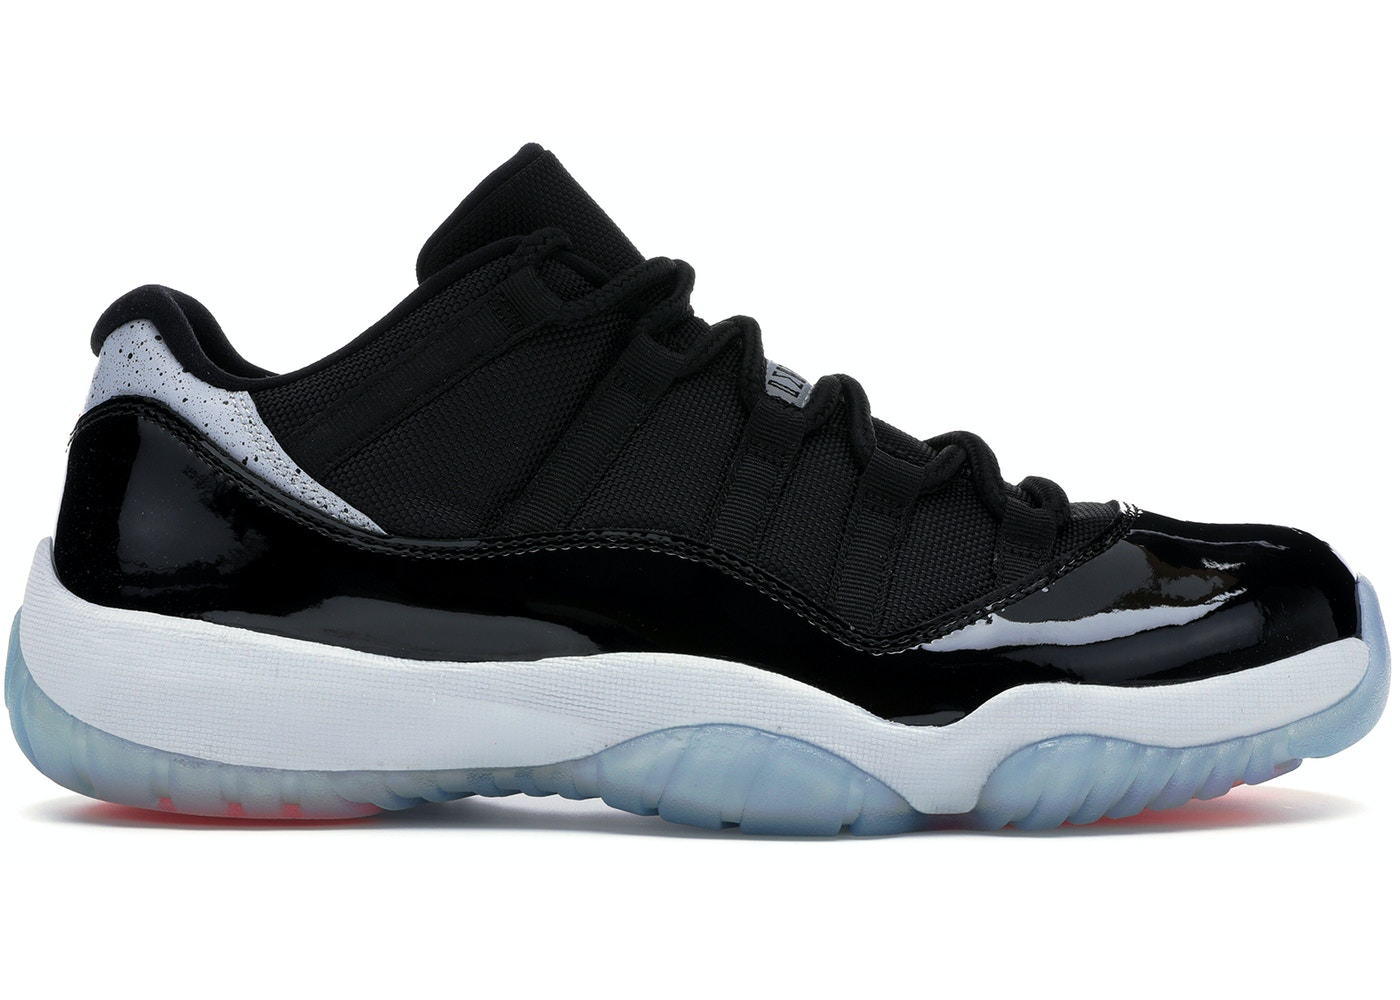 52ce9085e3b29e Jordan 11 Retro Low Infrared - 528895-023